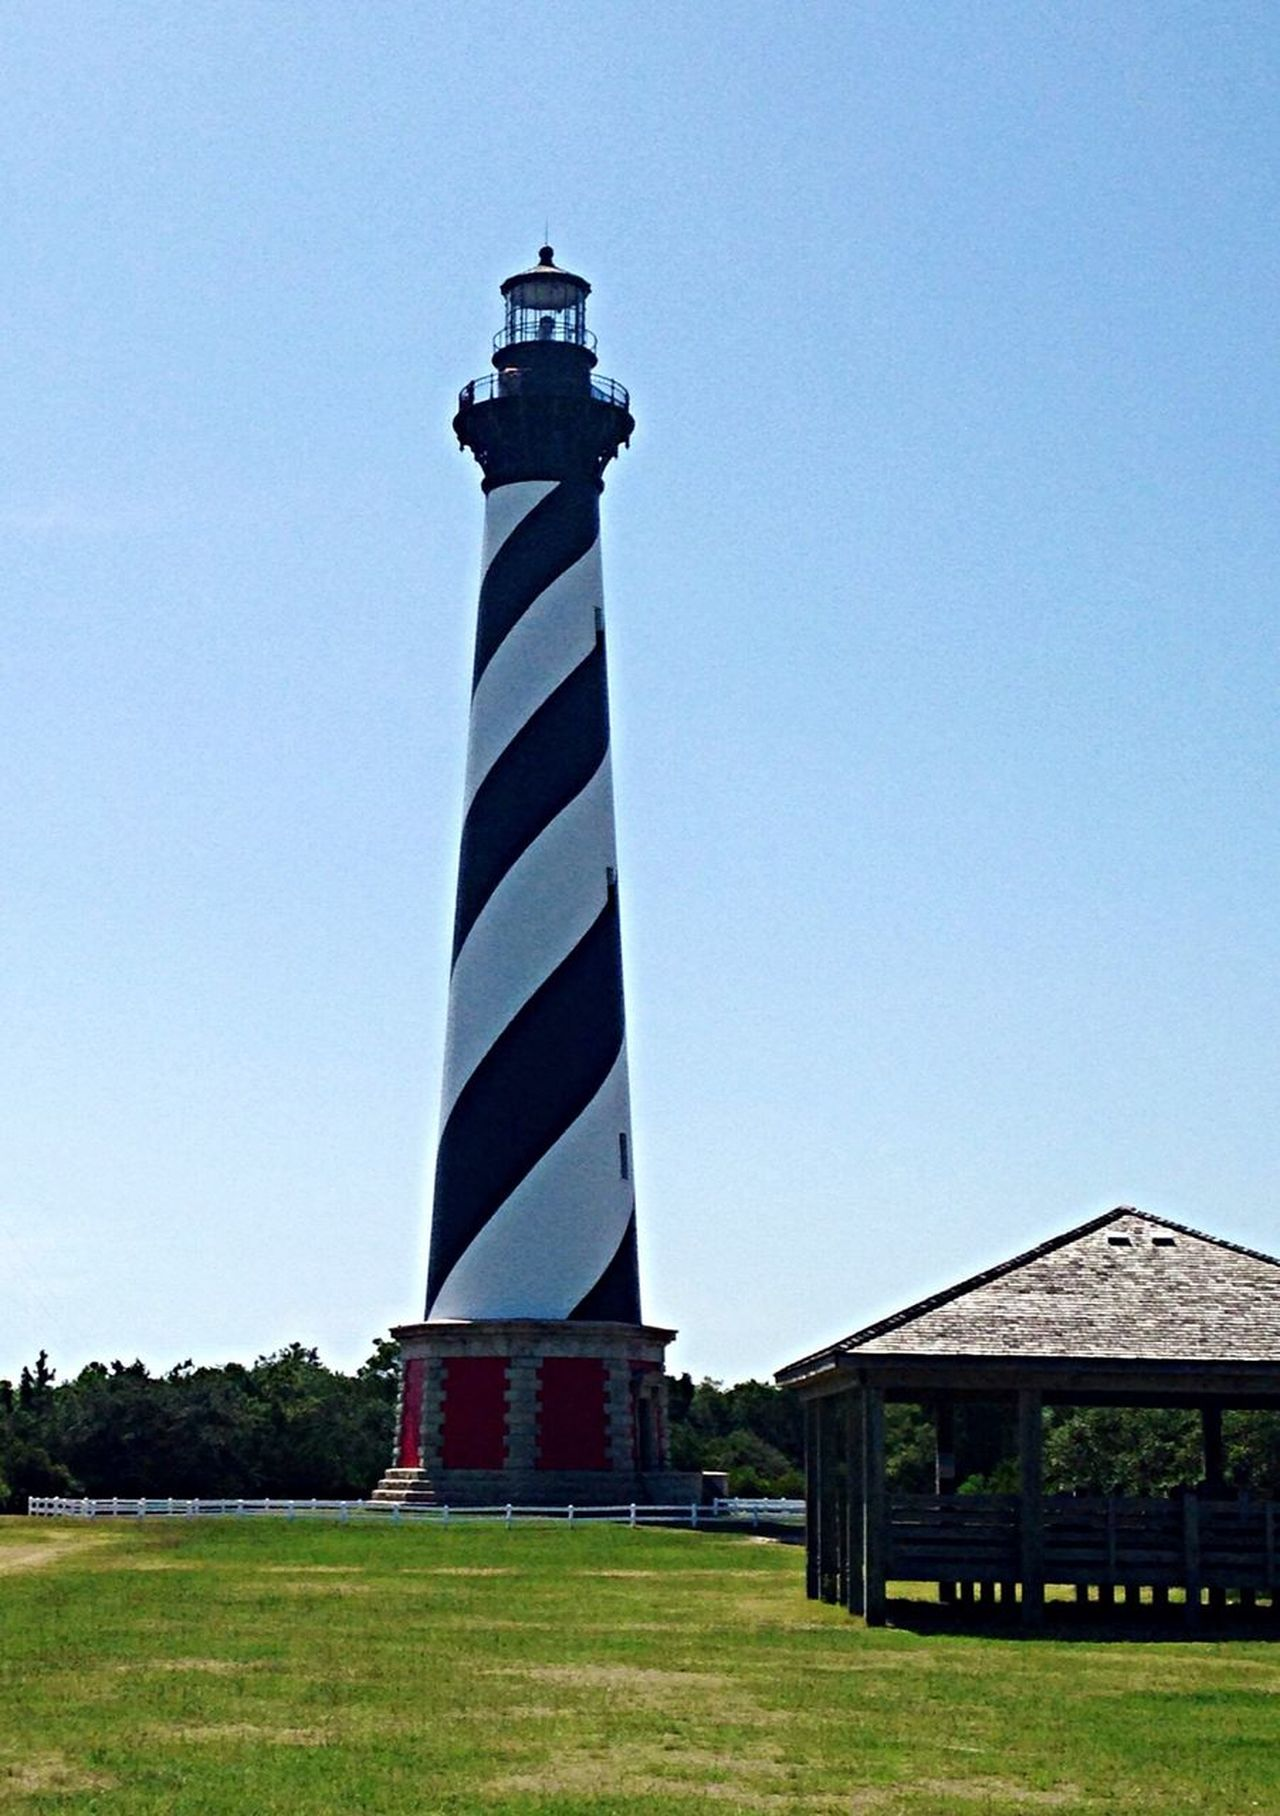 Cape Hatteras Lighthouse looking from direction of where it used to be located. OBX14 Lighthouse Traveling